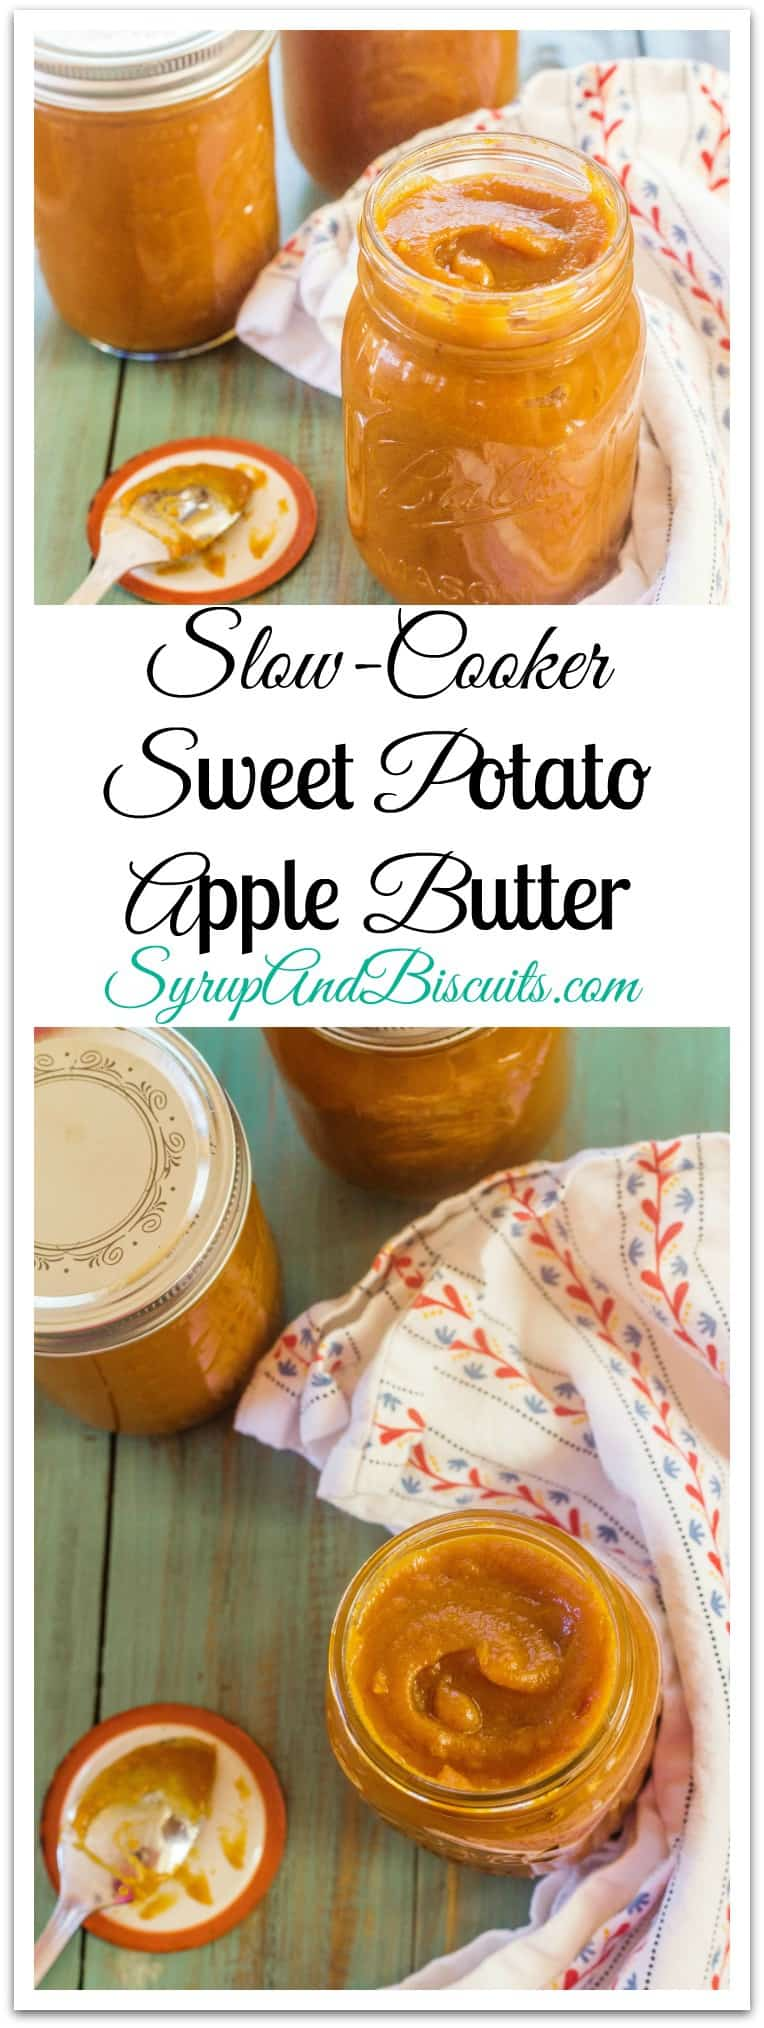 Slow-Cooker Sweet Potato Apple Butter relies on the same flavors as you find in pumpkin butter or pumpkin pie, for that matter. #SweetPotato #AppleButter #SouthernFave